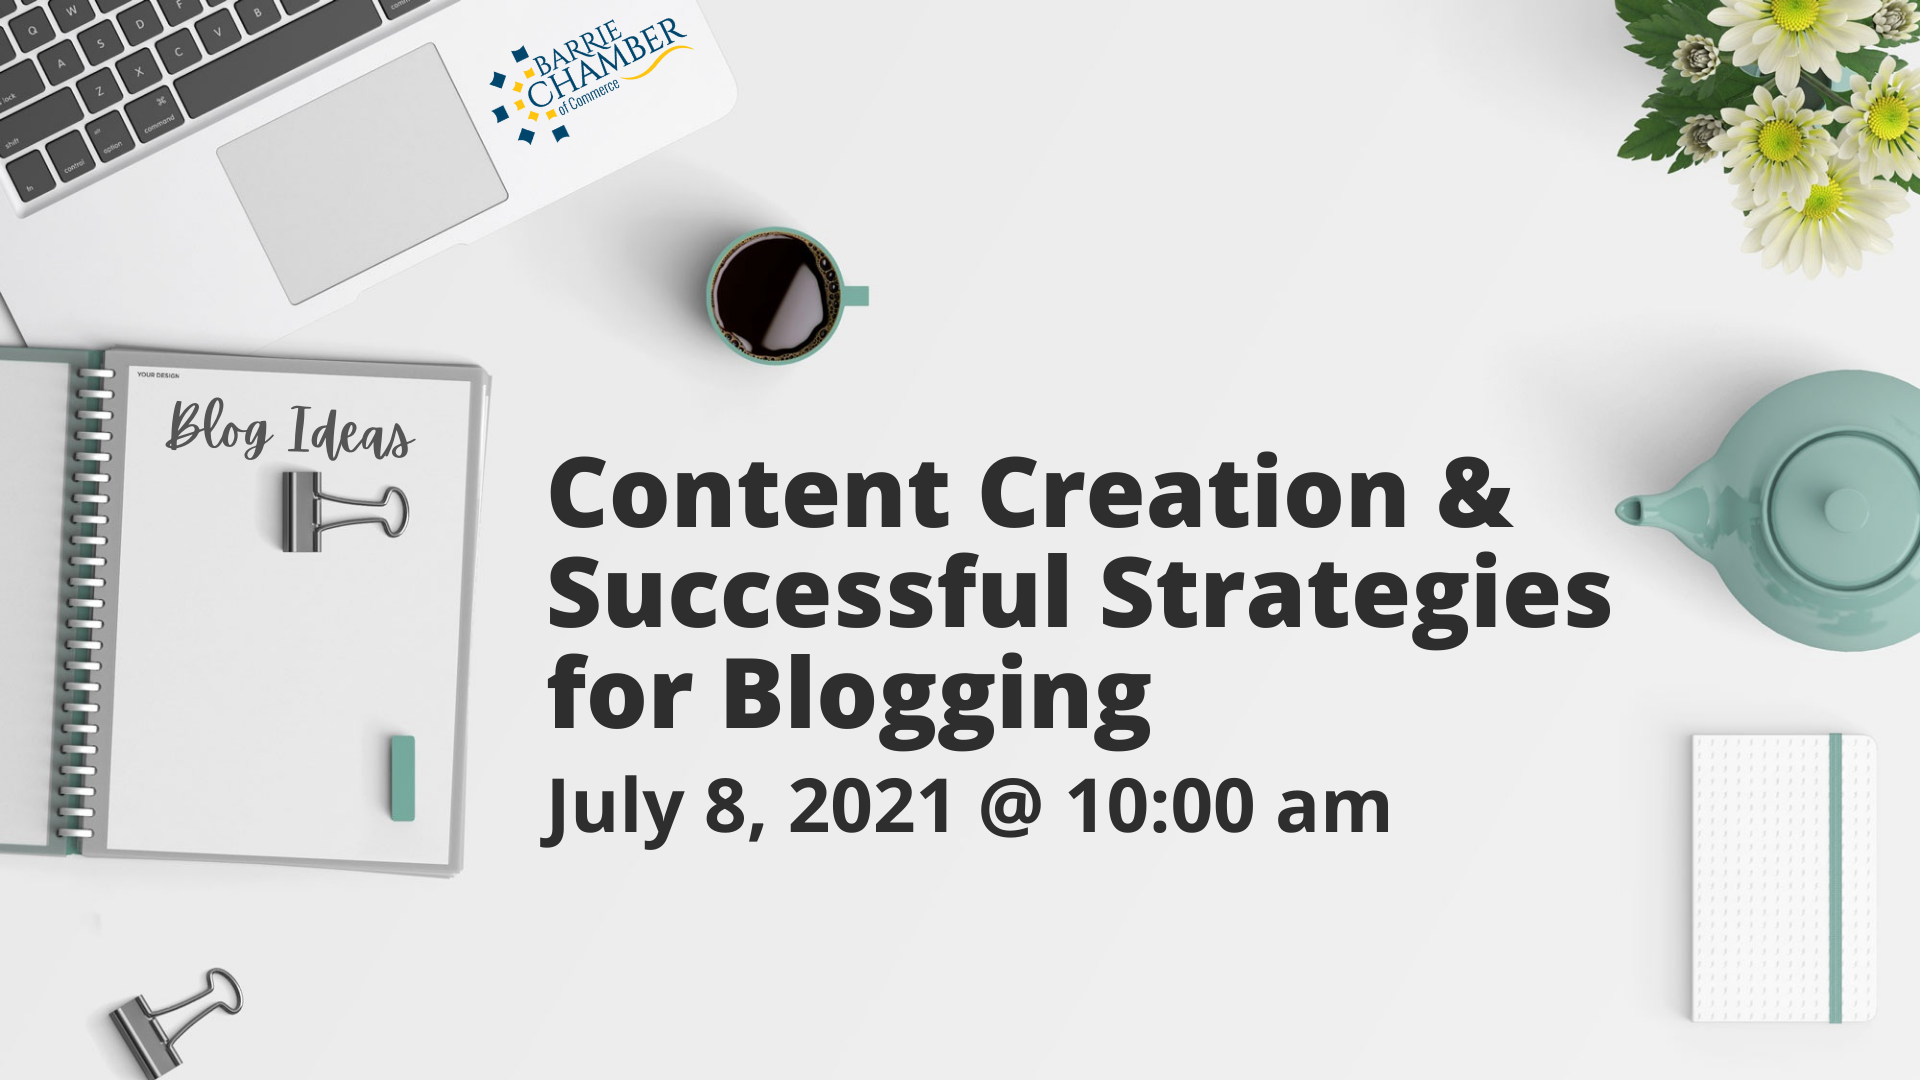 Content Creation & Successful Strategies for Blogging @ 10:00 am